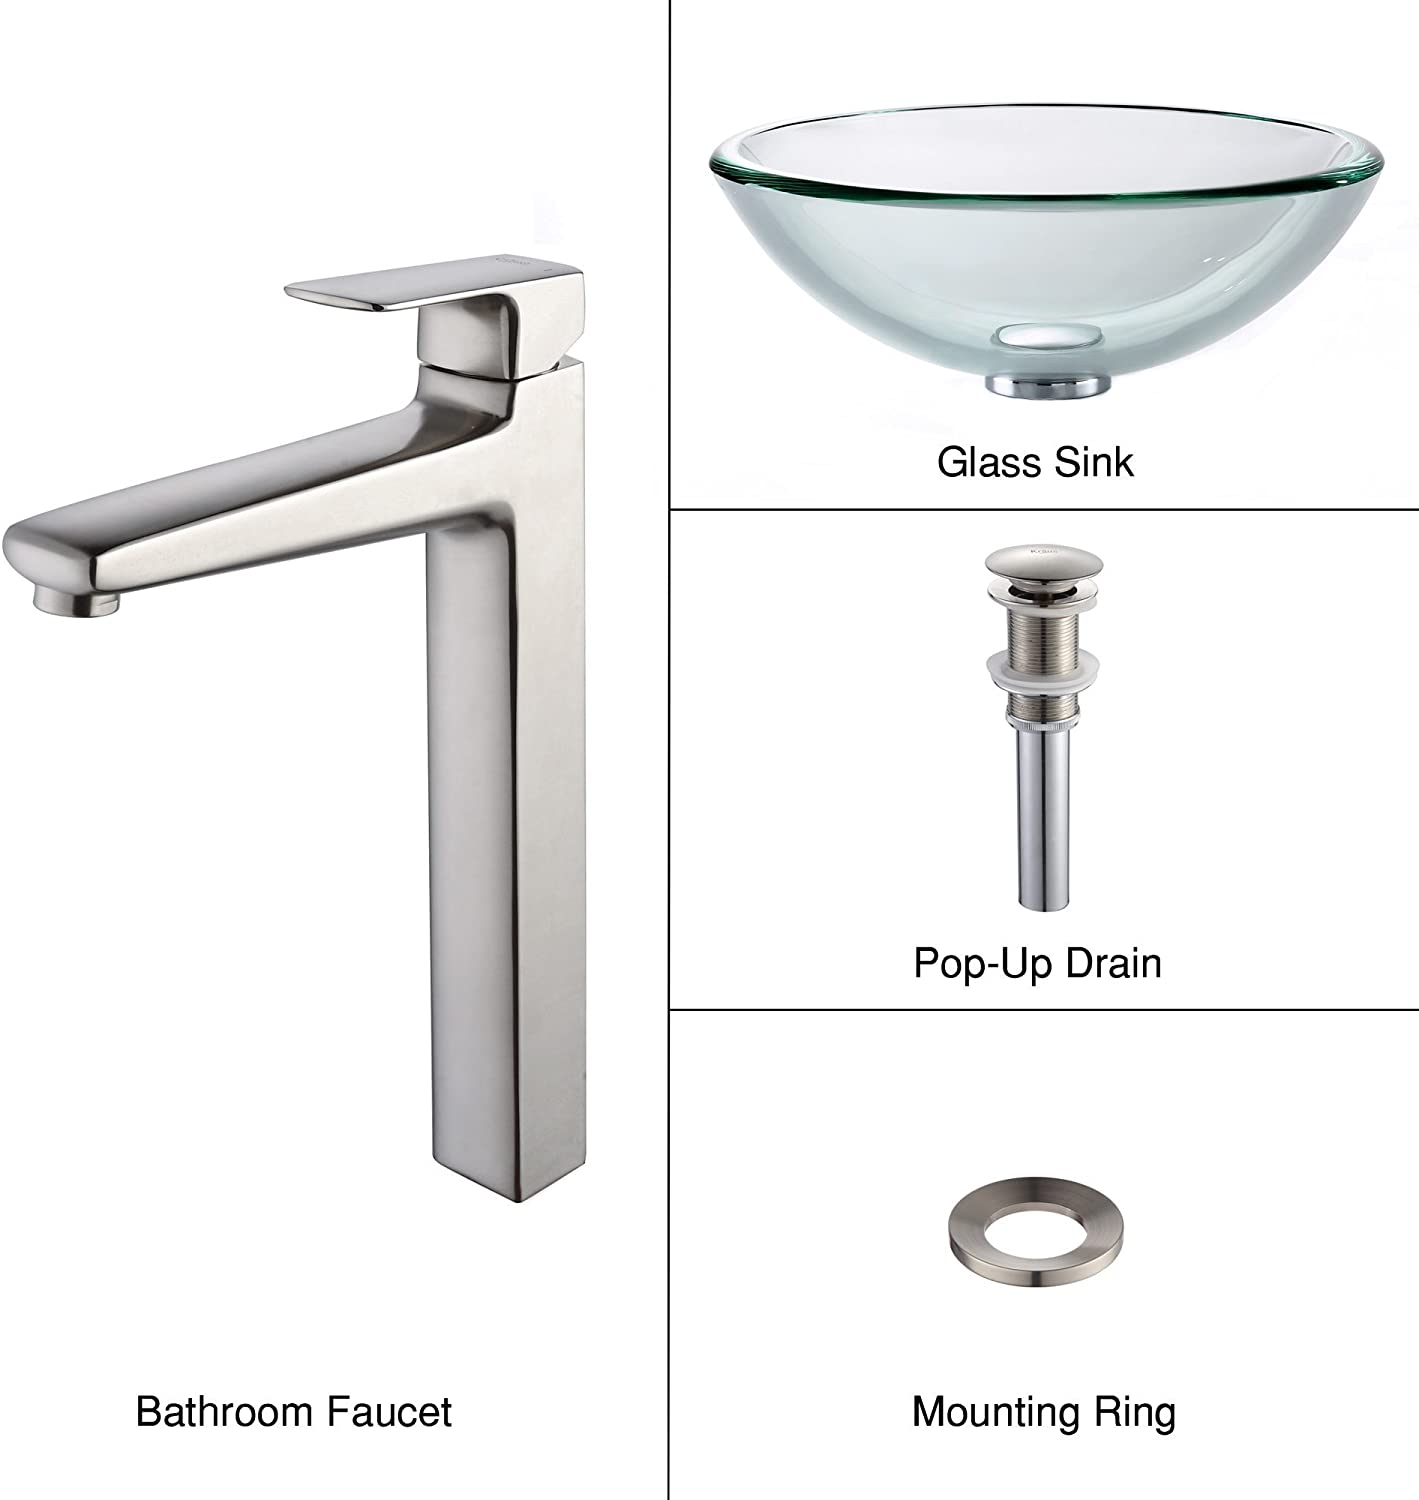 Kraus C-GV-101-19mm-15500BN Clear 19mm thick Glass Vessel Sink and Virtus Faucet Brushed Nickel